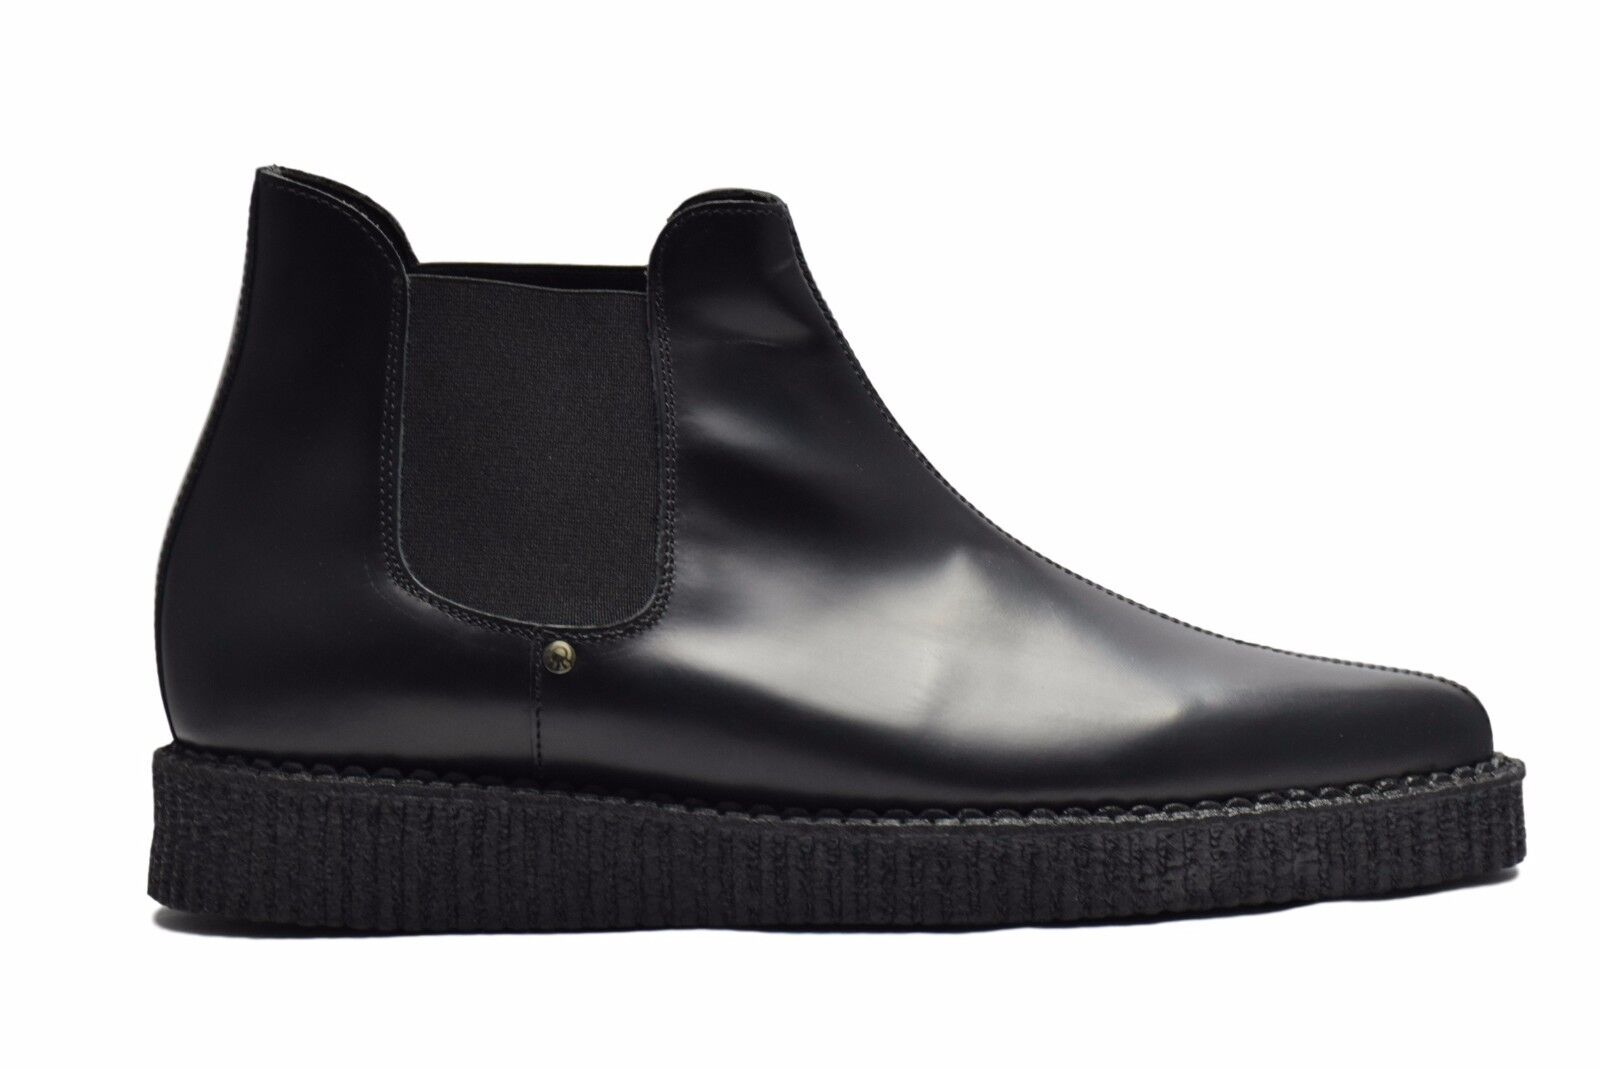 Steel Ground schwarz Leder Ankle Stiefel Chelsea Boot Pointed Creepers Sc210Z178